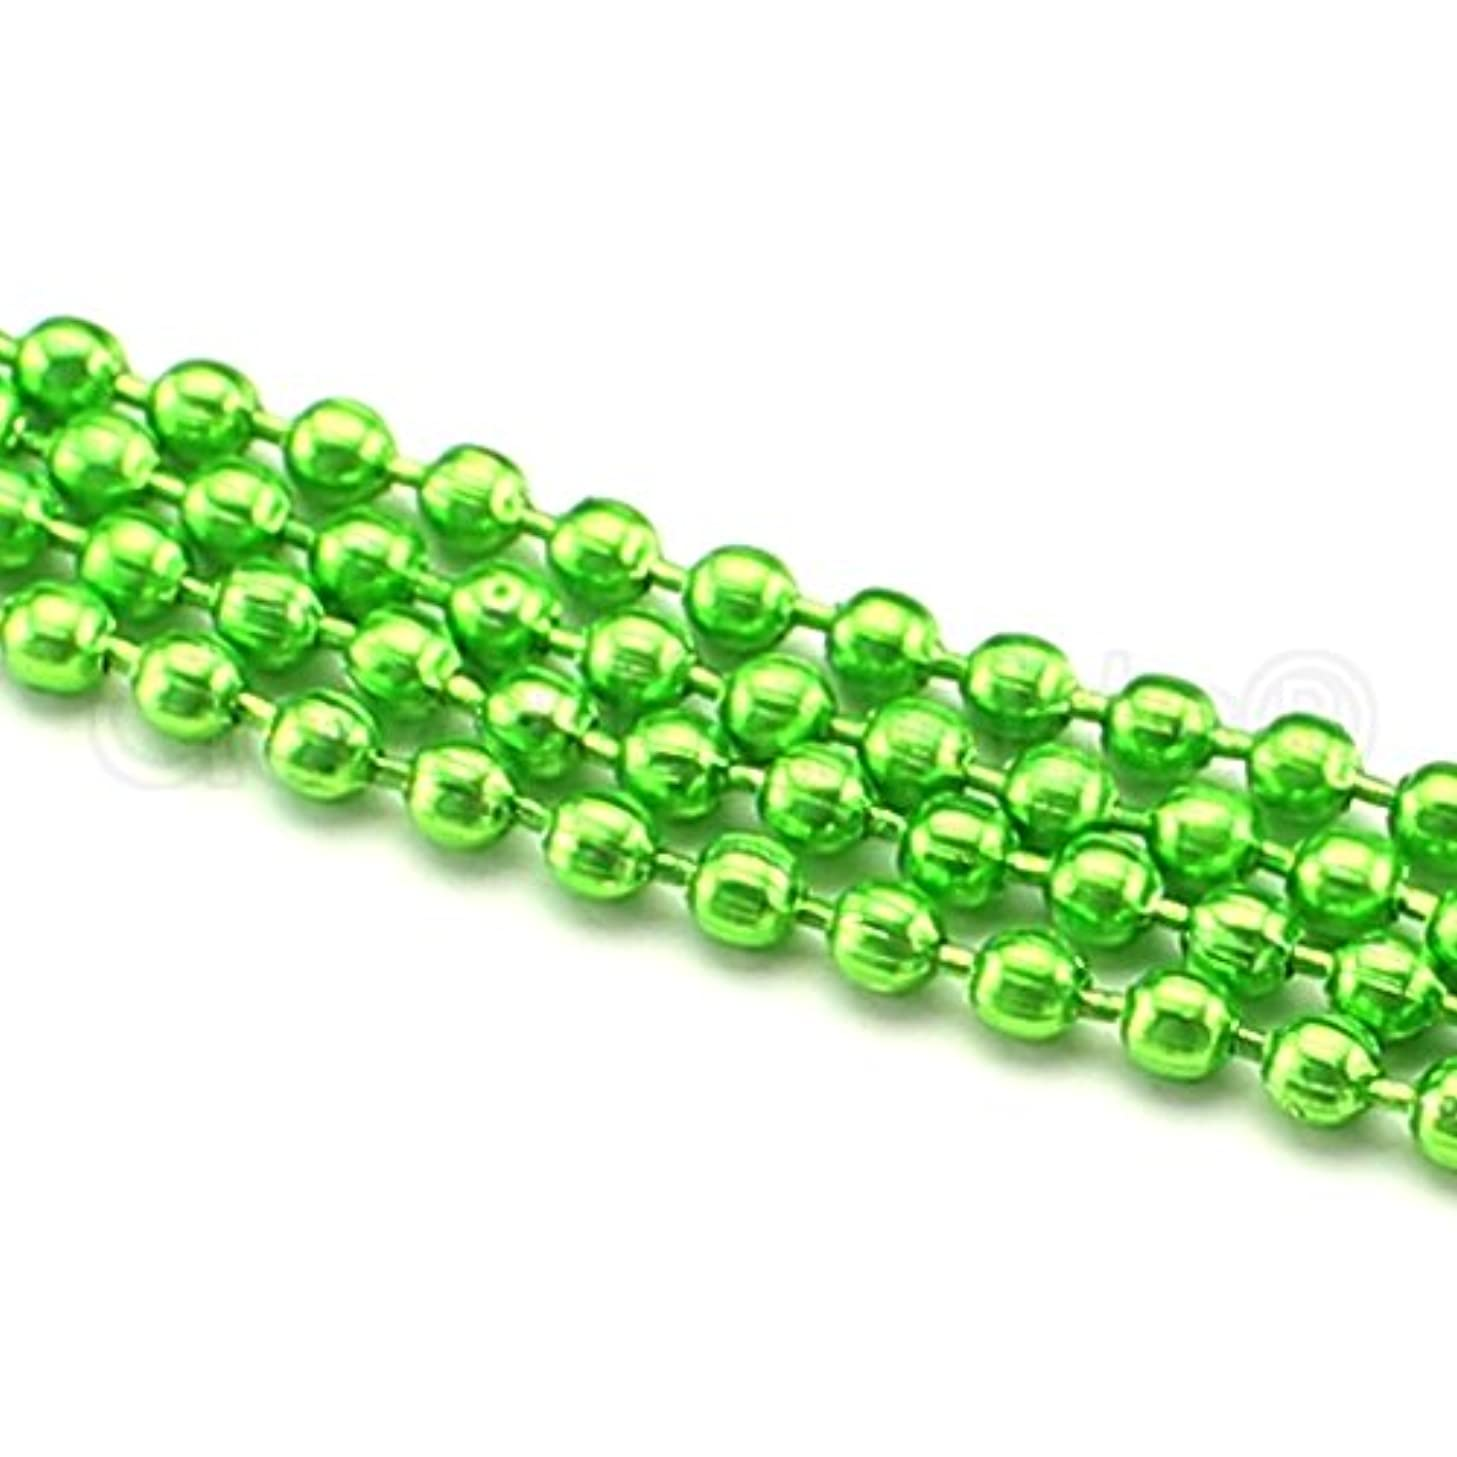 CleverDelights Ball Chain Roll - 30 Feet - Neon Green Color - 2.4mm Metal Ball Bead Chain